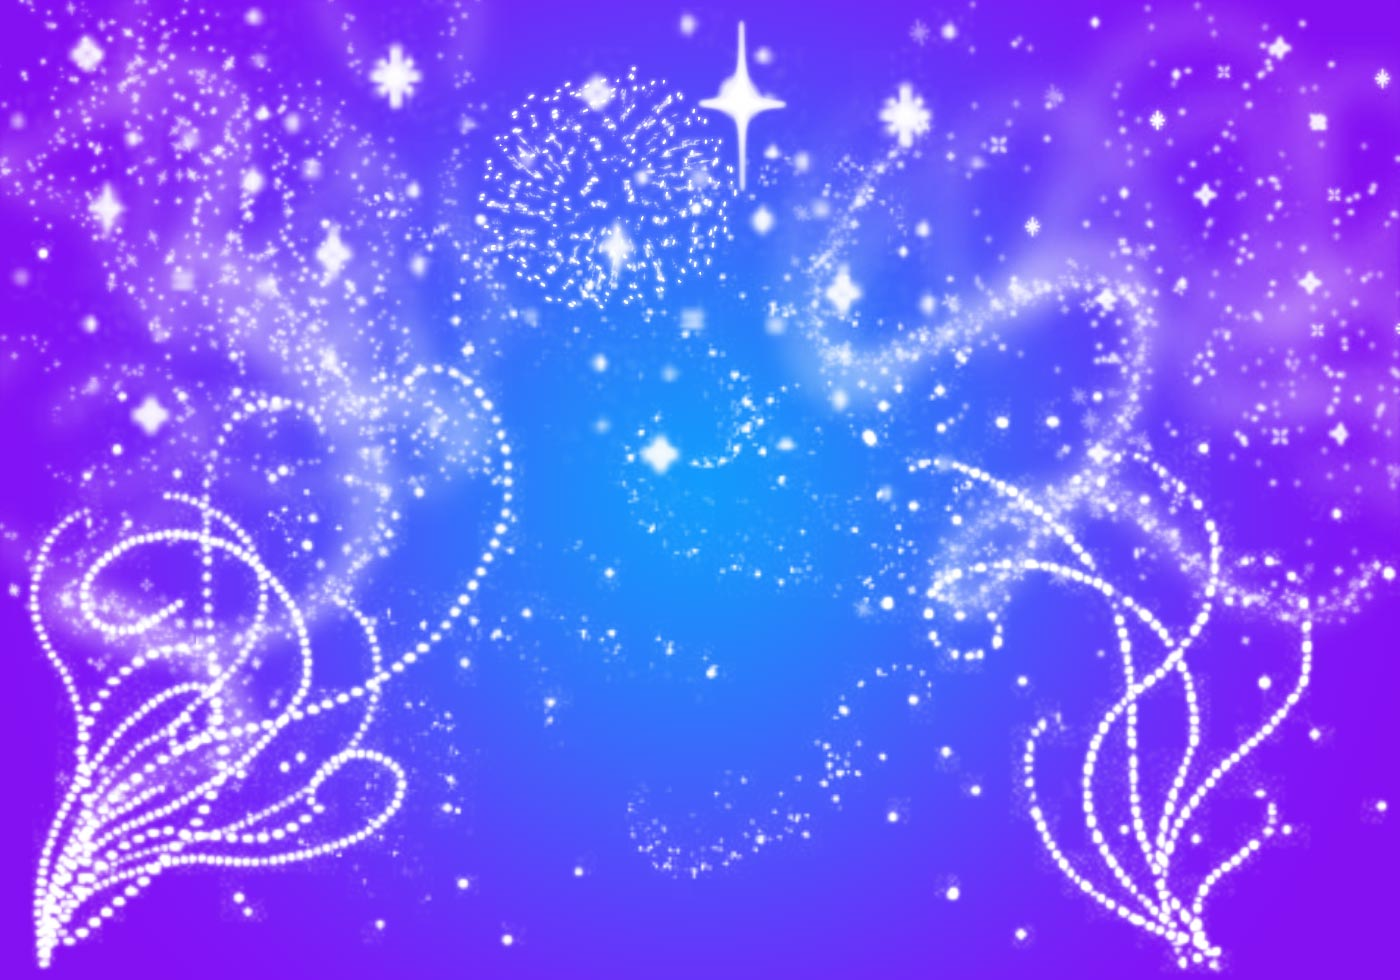 Tinkerbell Fall Wallpaper Glitter Amp Sparkles Brushes Free Photoshop Brushes At